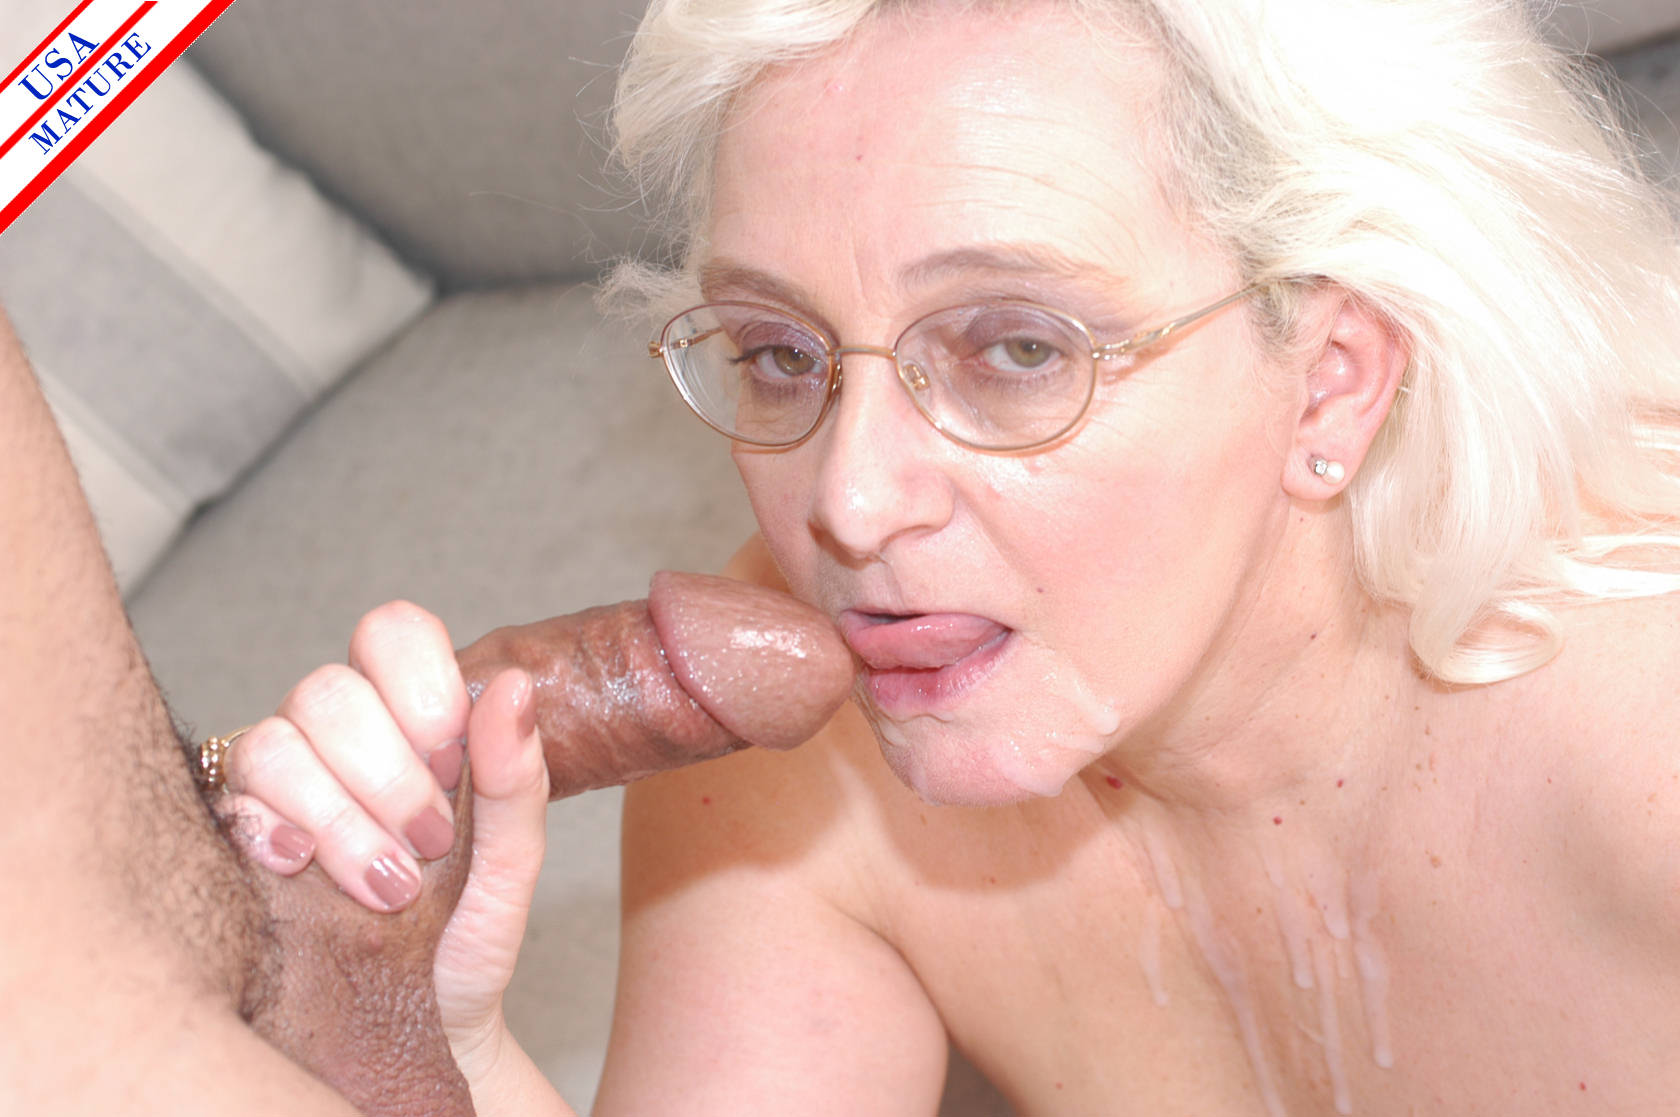 Taking it deep with this huge dildo 7